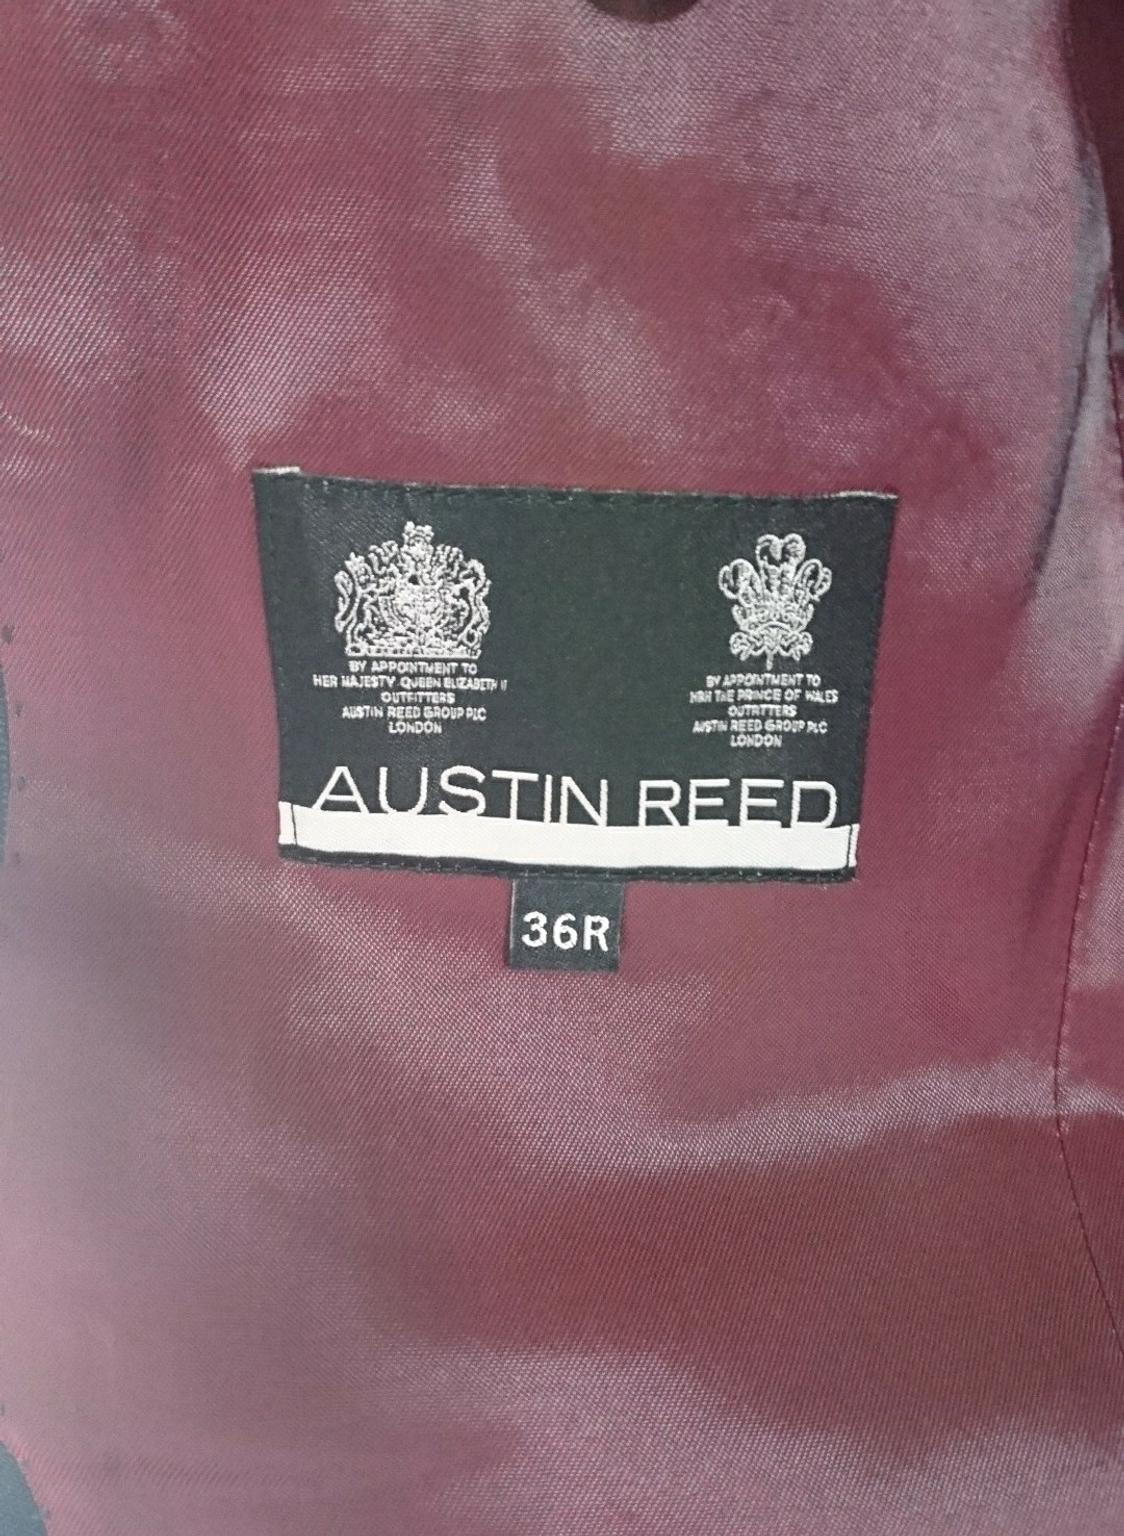 Austin Reed Suit Jacket And Trousers In Pe19 Eynesbury For 25 00 For Sale Shpock